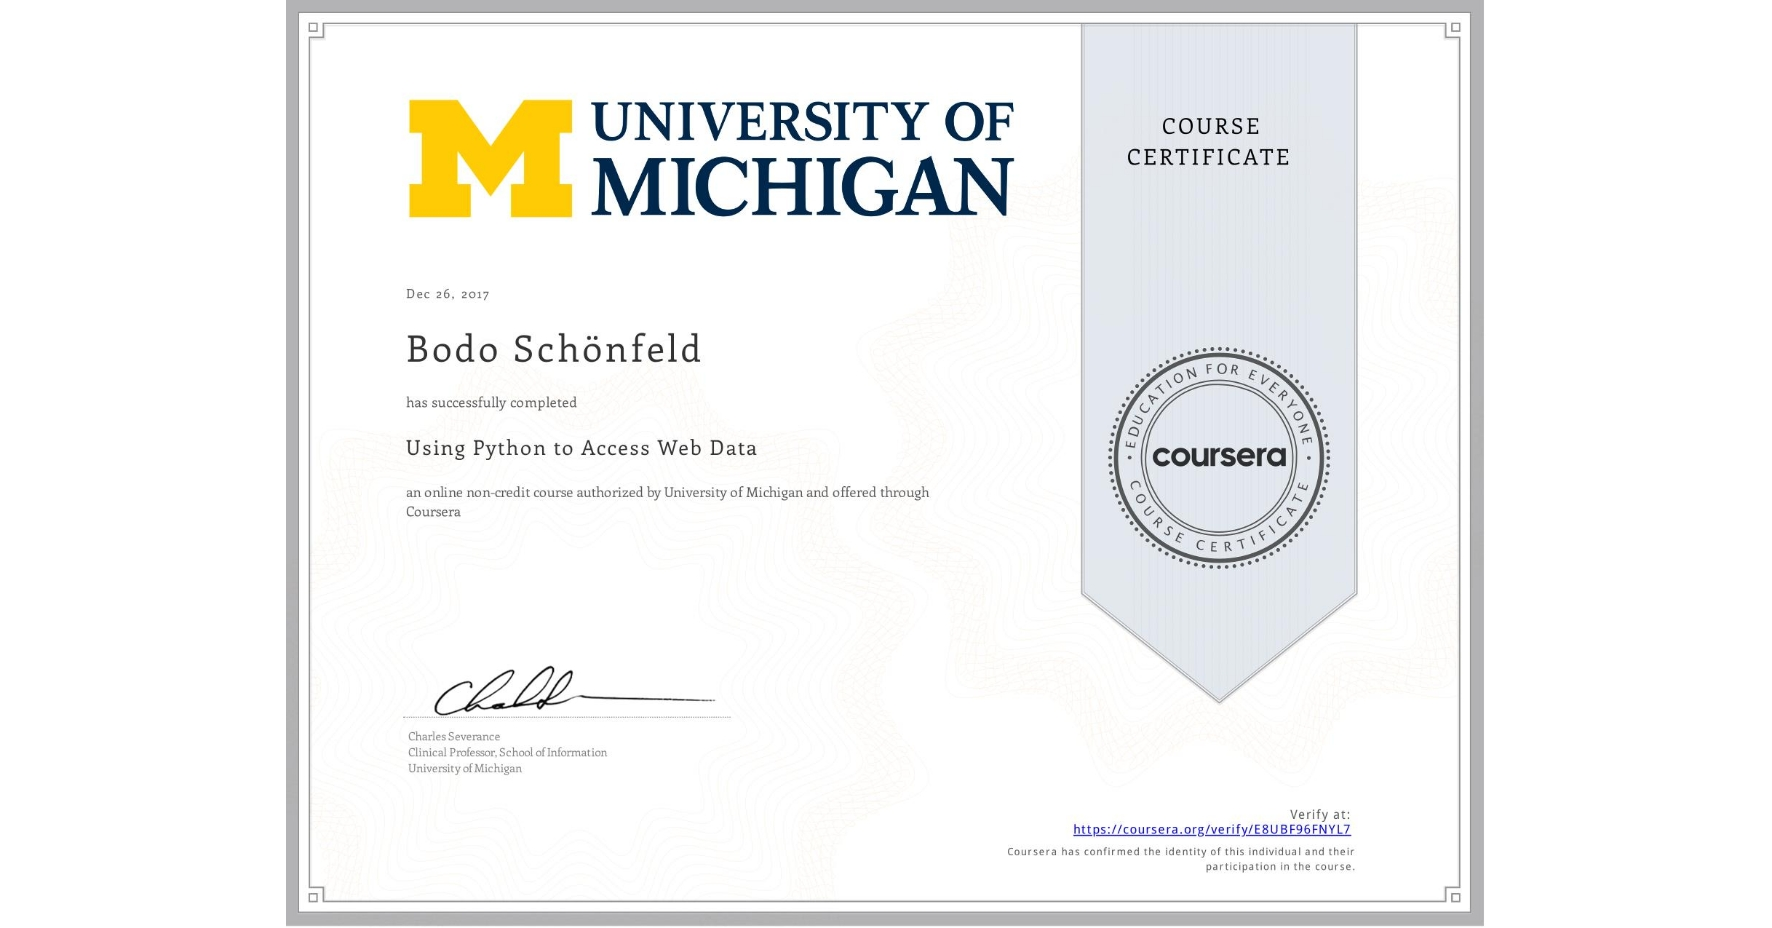 View certificate for Bodo Schönfeld, Using Python to Access Web Data, an online non-credit course authorized by University of Michigan and offered through Coursera